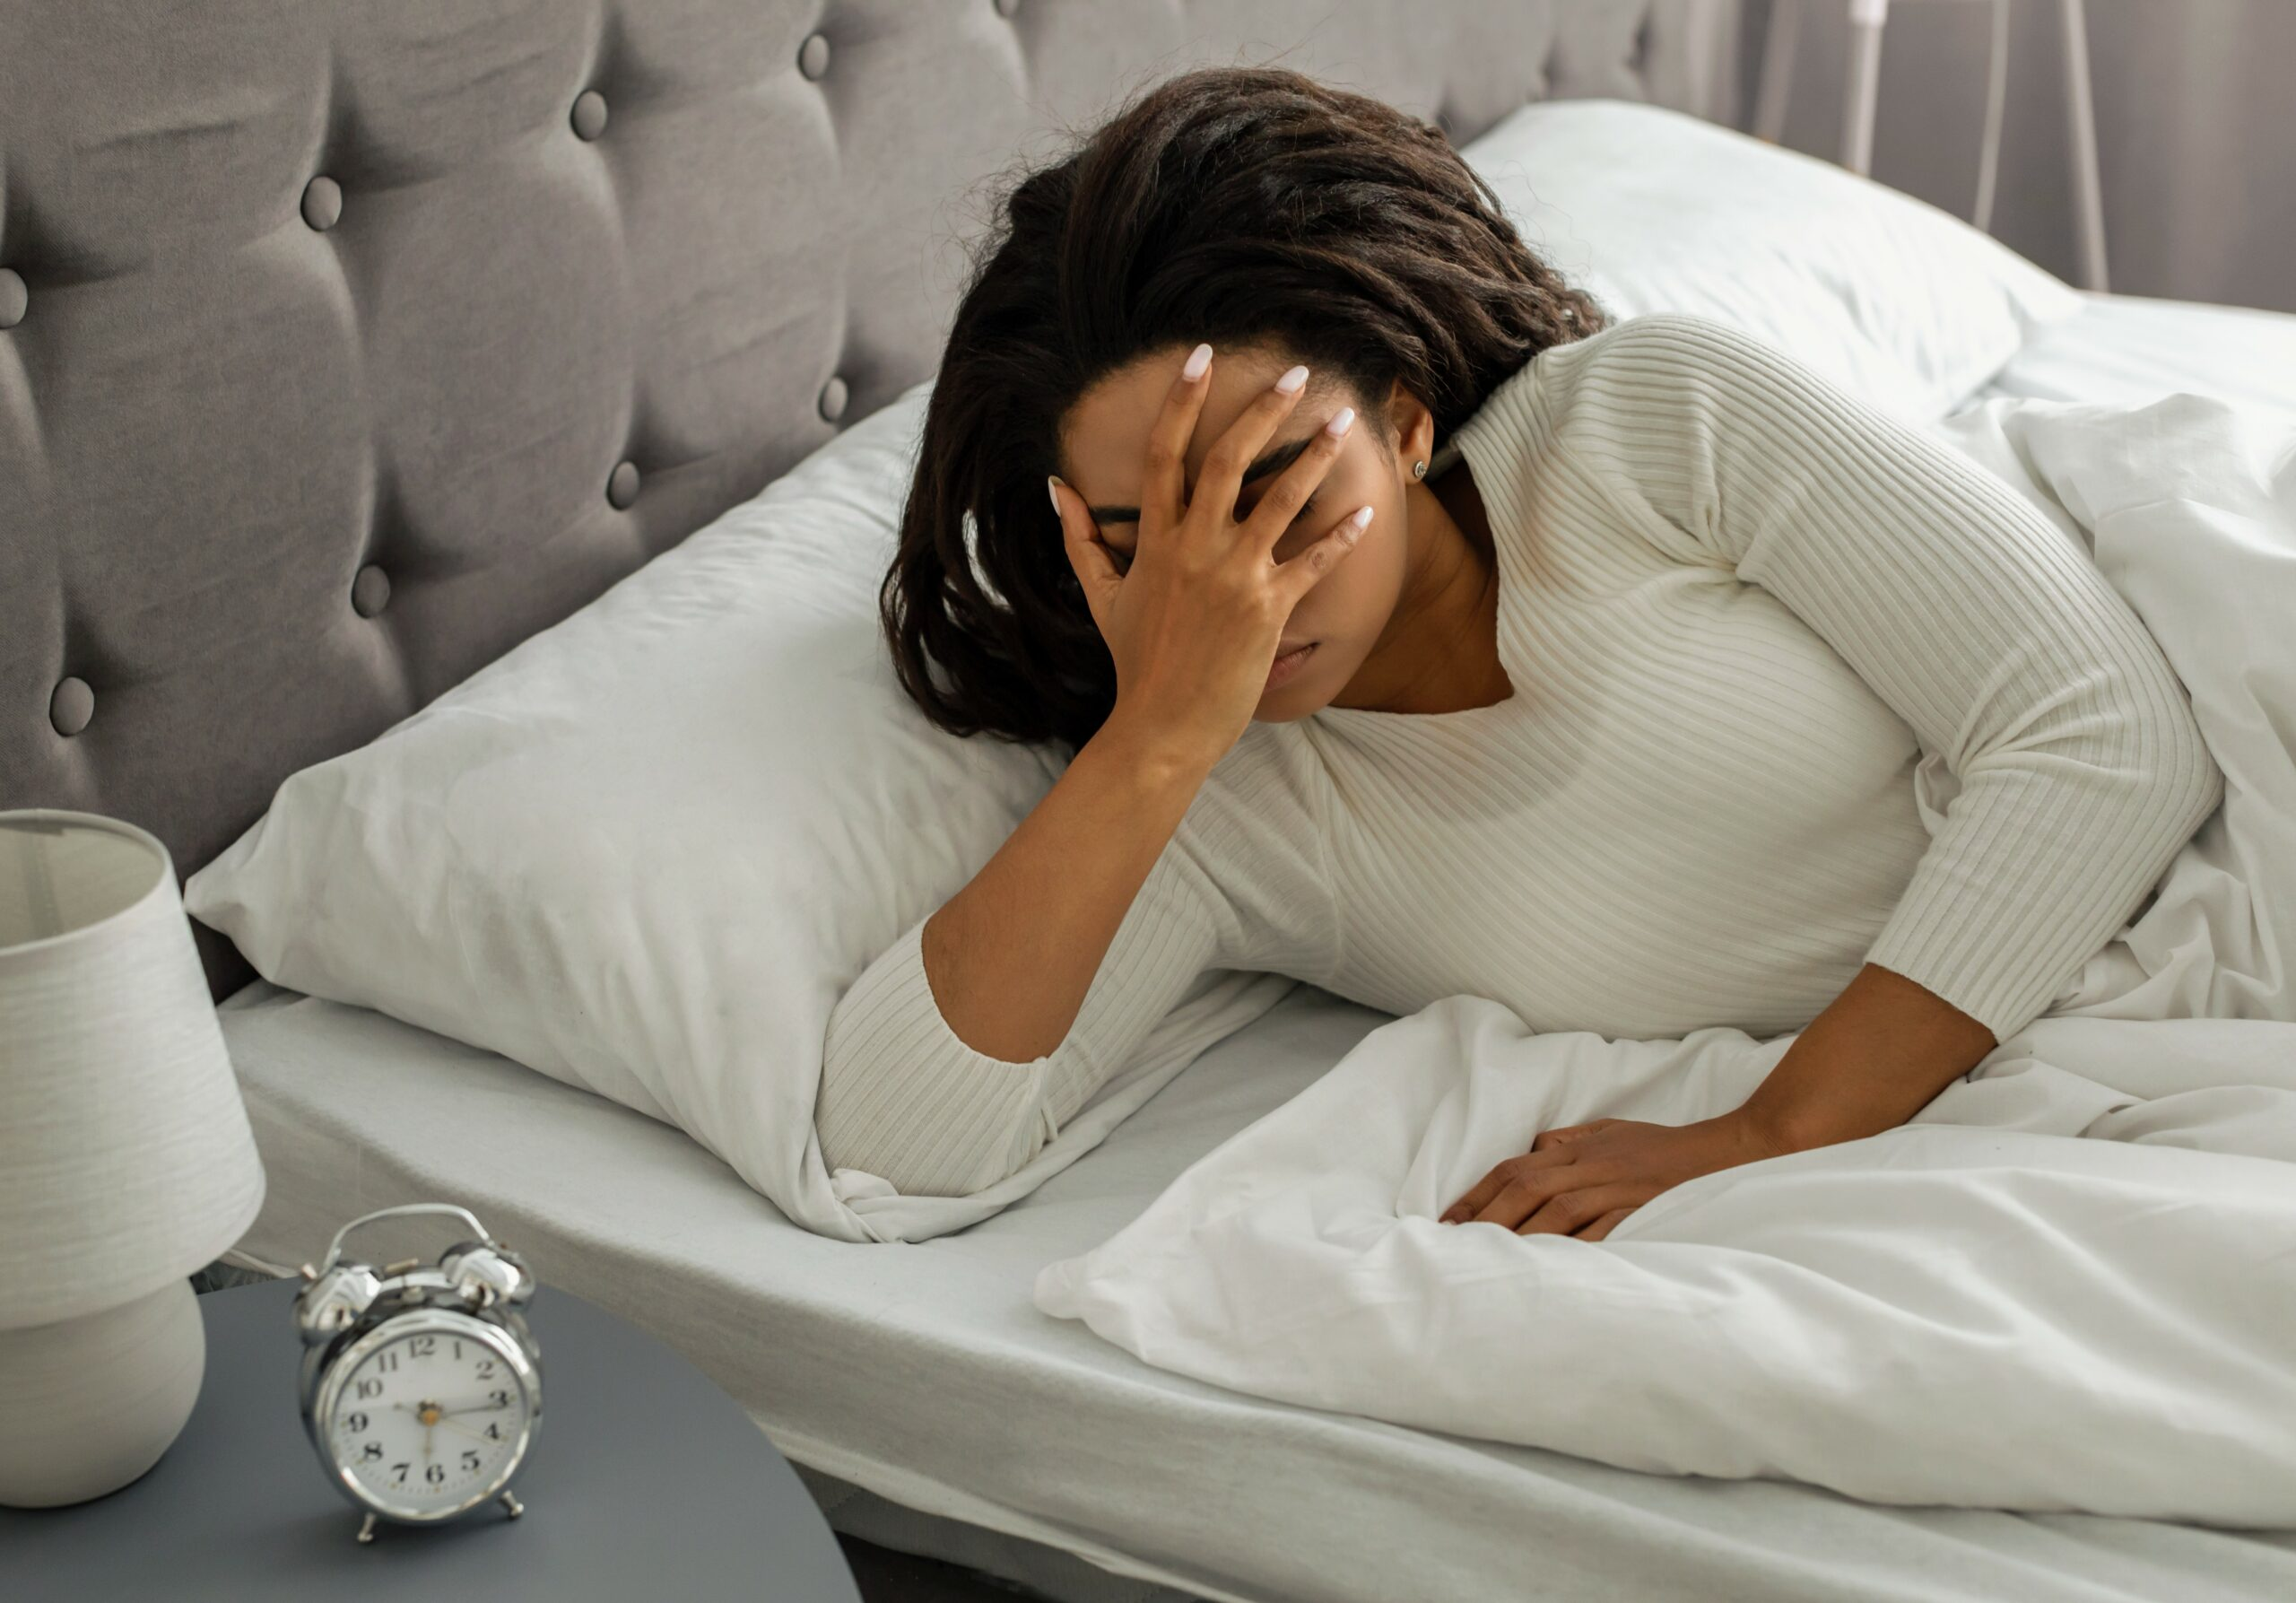 In the largest study of its kind, researchers have found that poor sleep quality is associated with mental illness